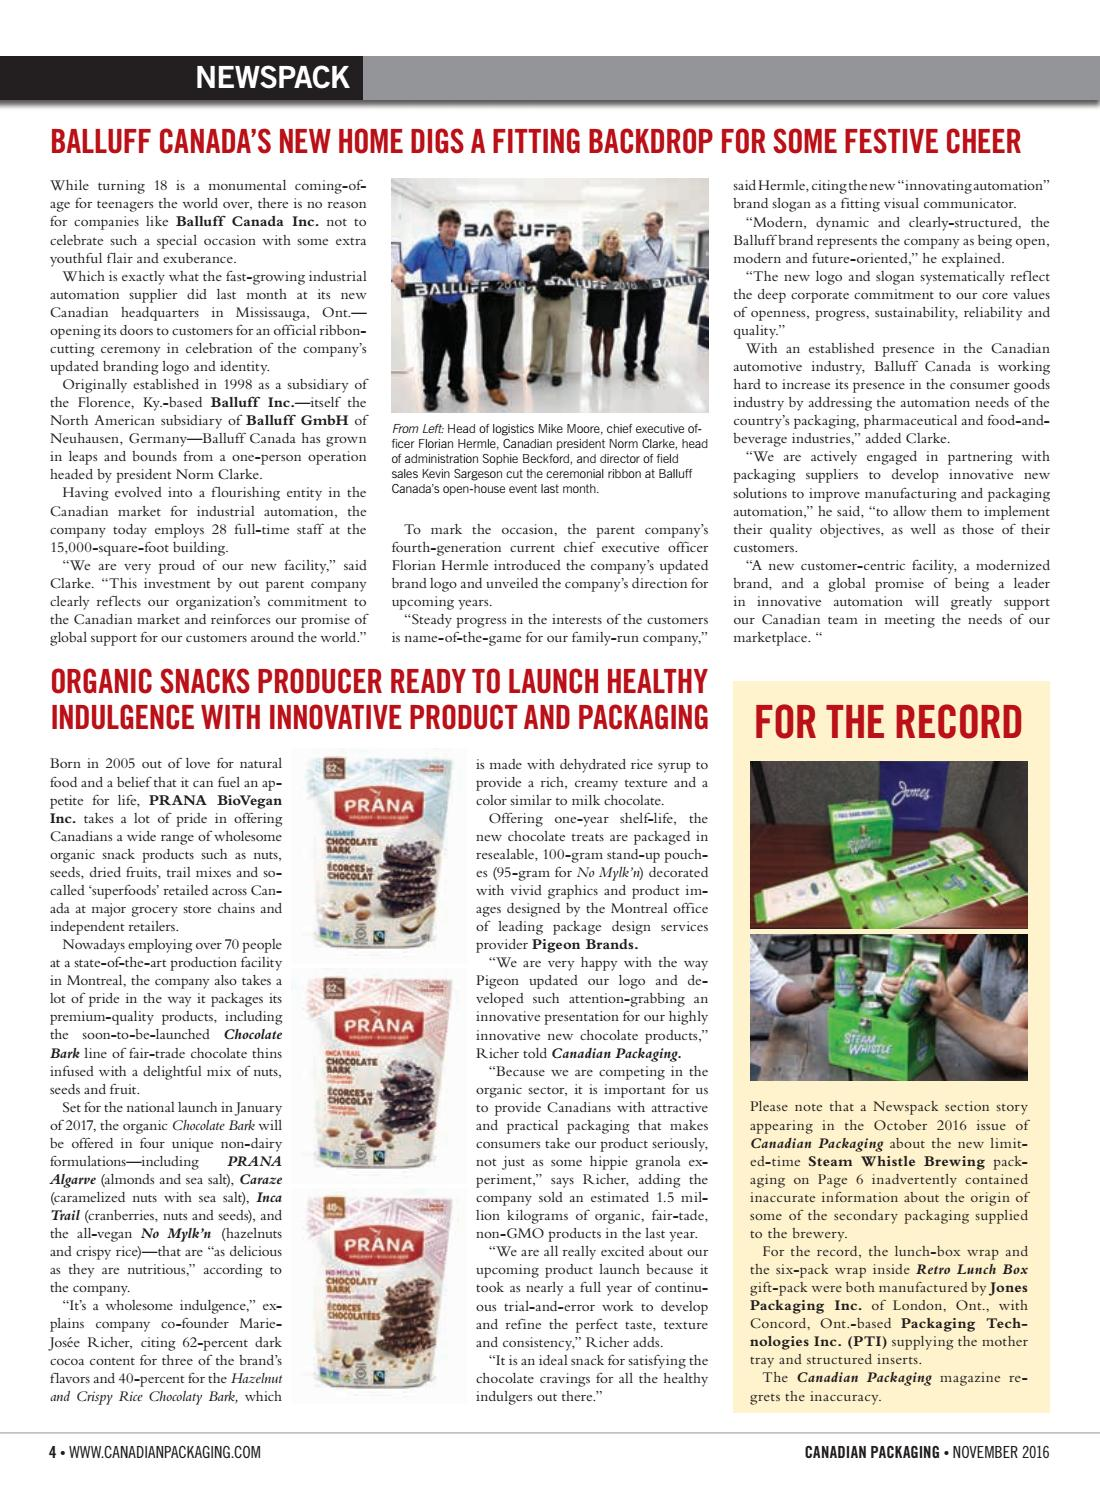 Canadian Packaging November 2016 by Annex Business Media - issuu